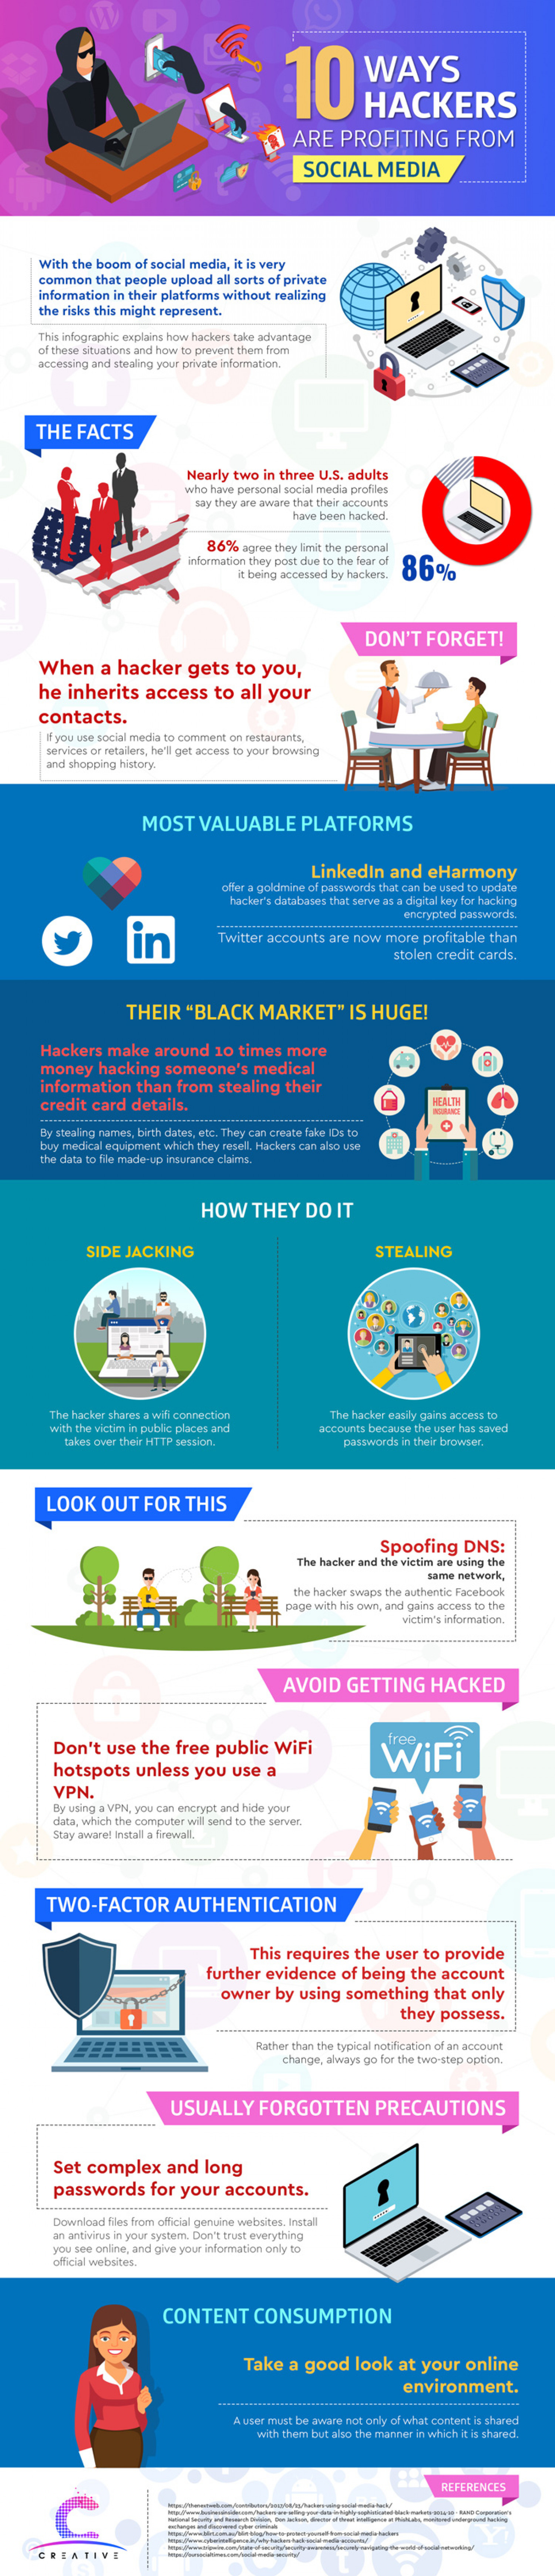 10 Ways Hackers Are Profiting From Social Media Infographic